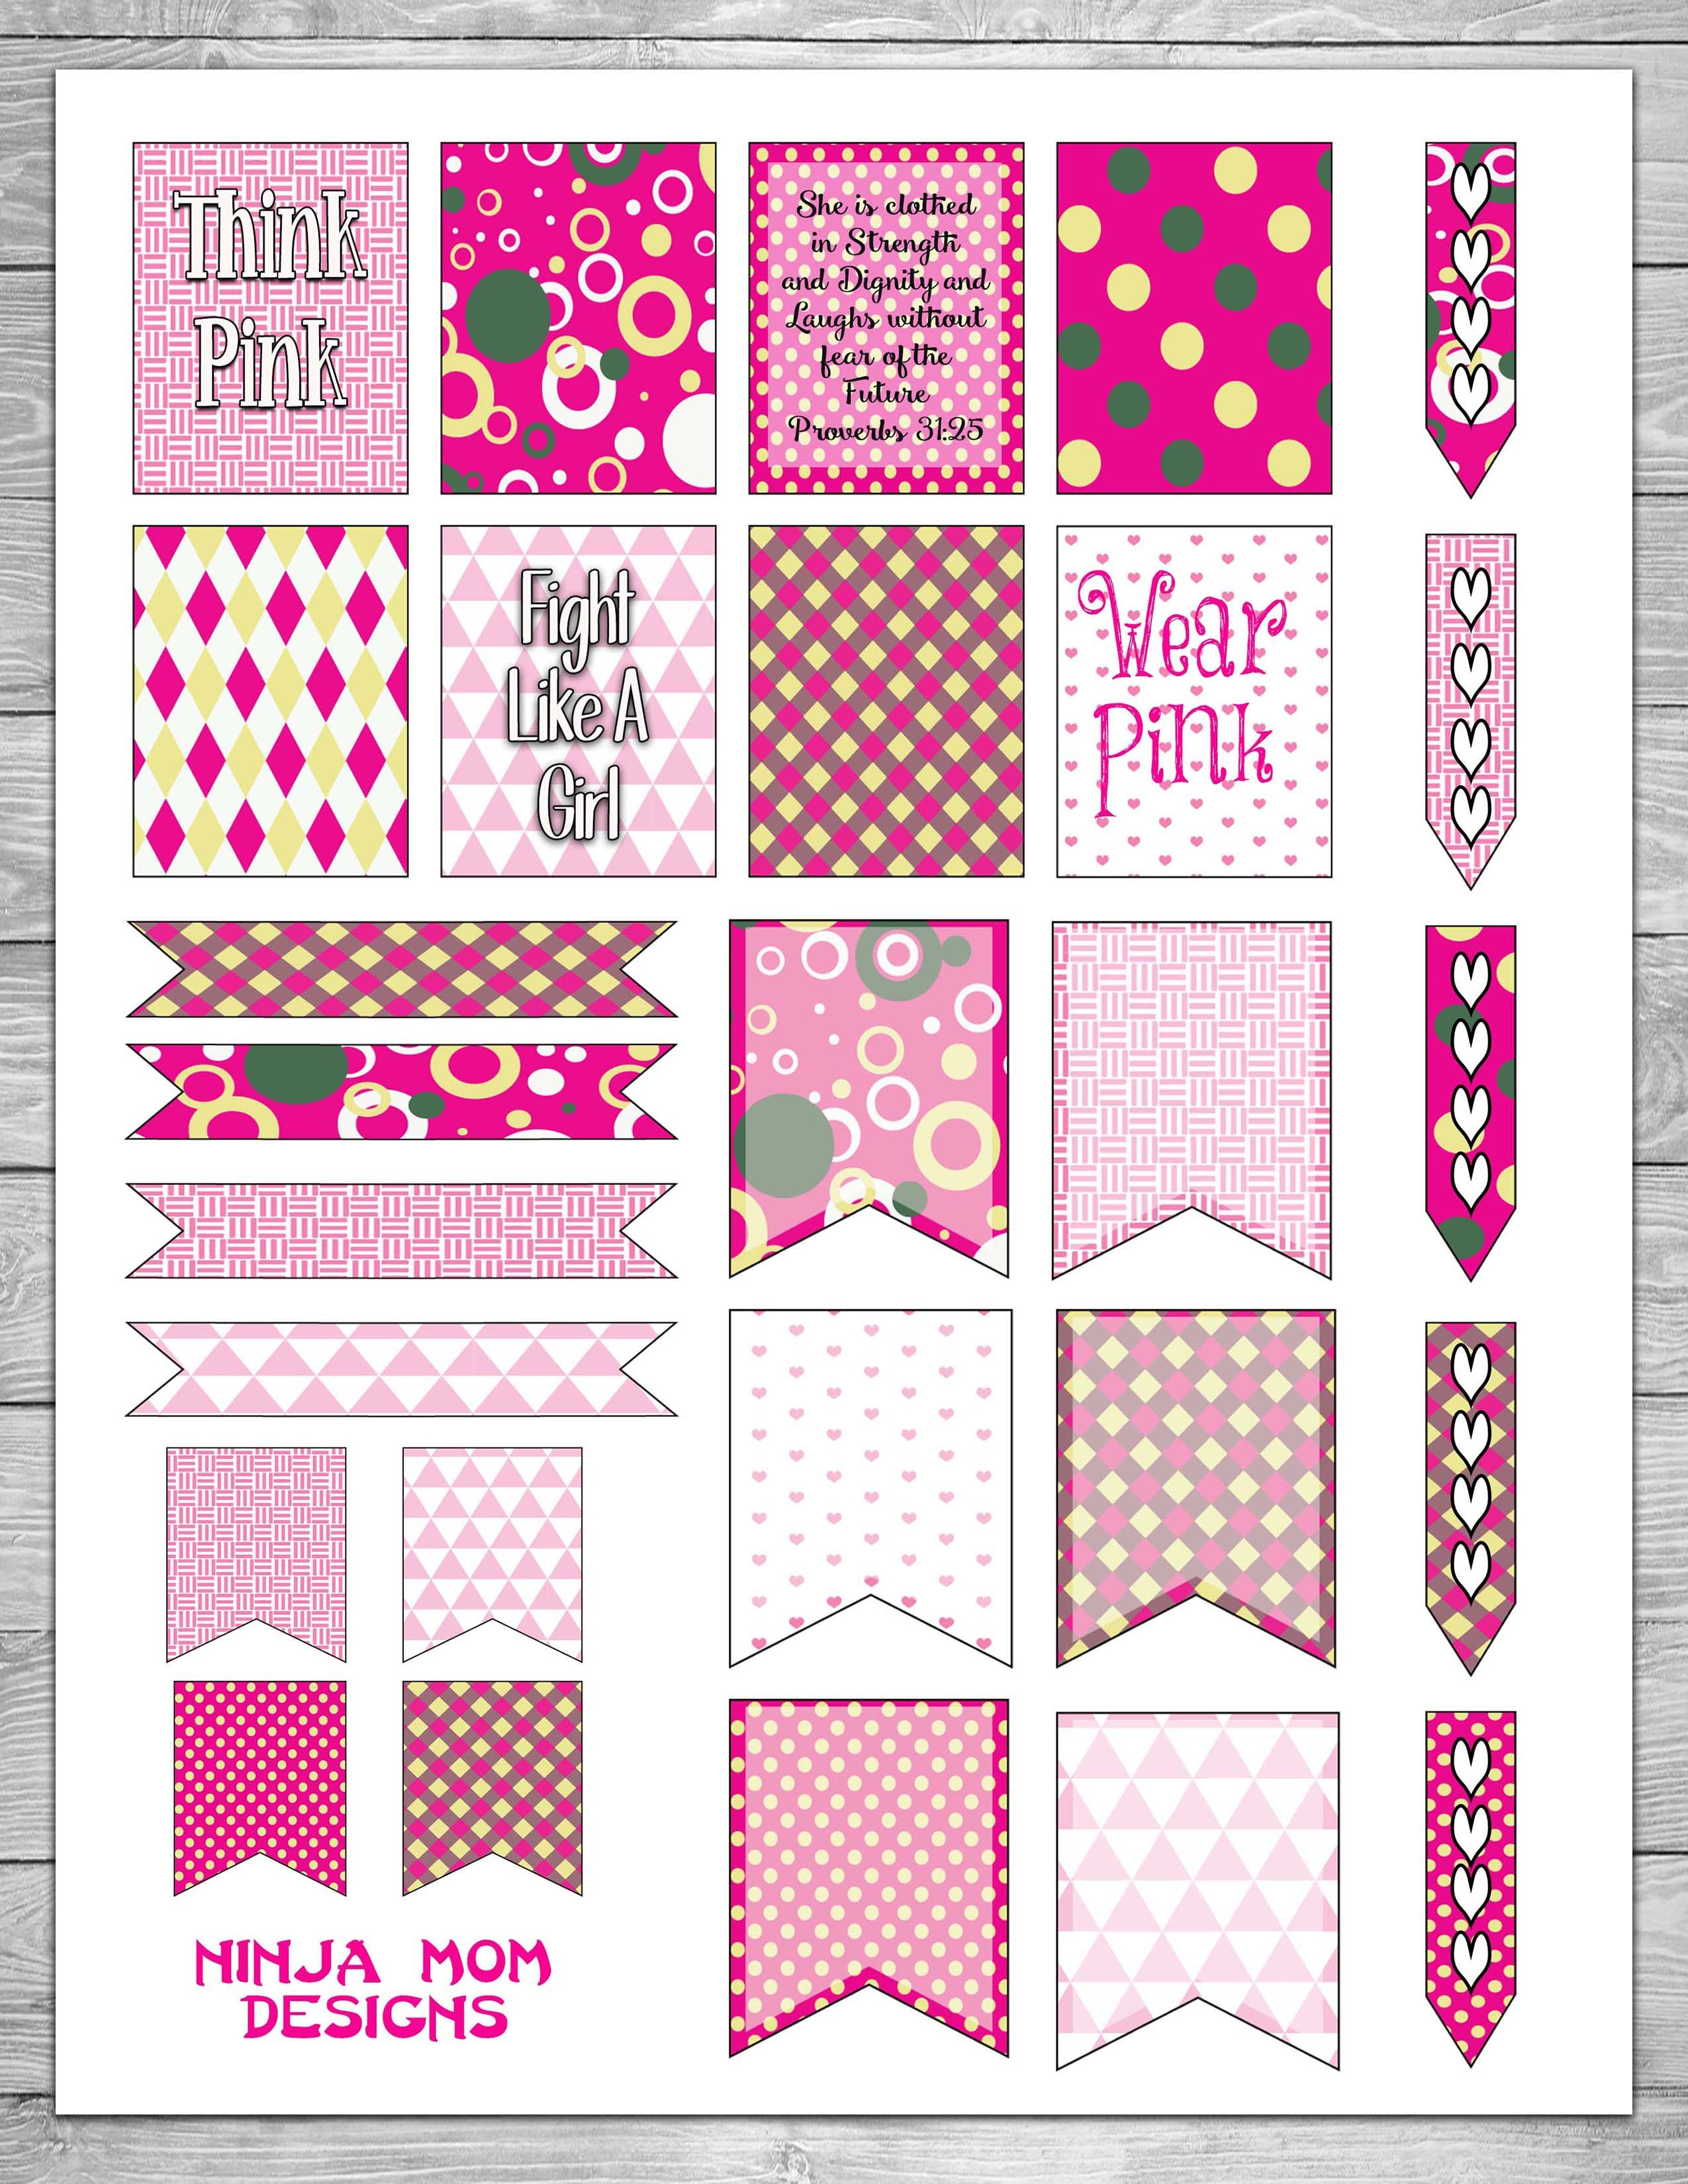 free breast cancer awareness planner stickers planners and printables pinterest filofax. Black Bedroom Furniture Sets. Home Design Ideas